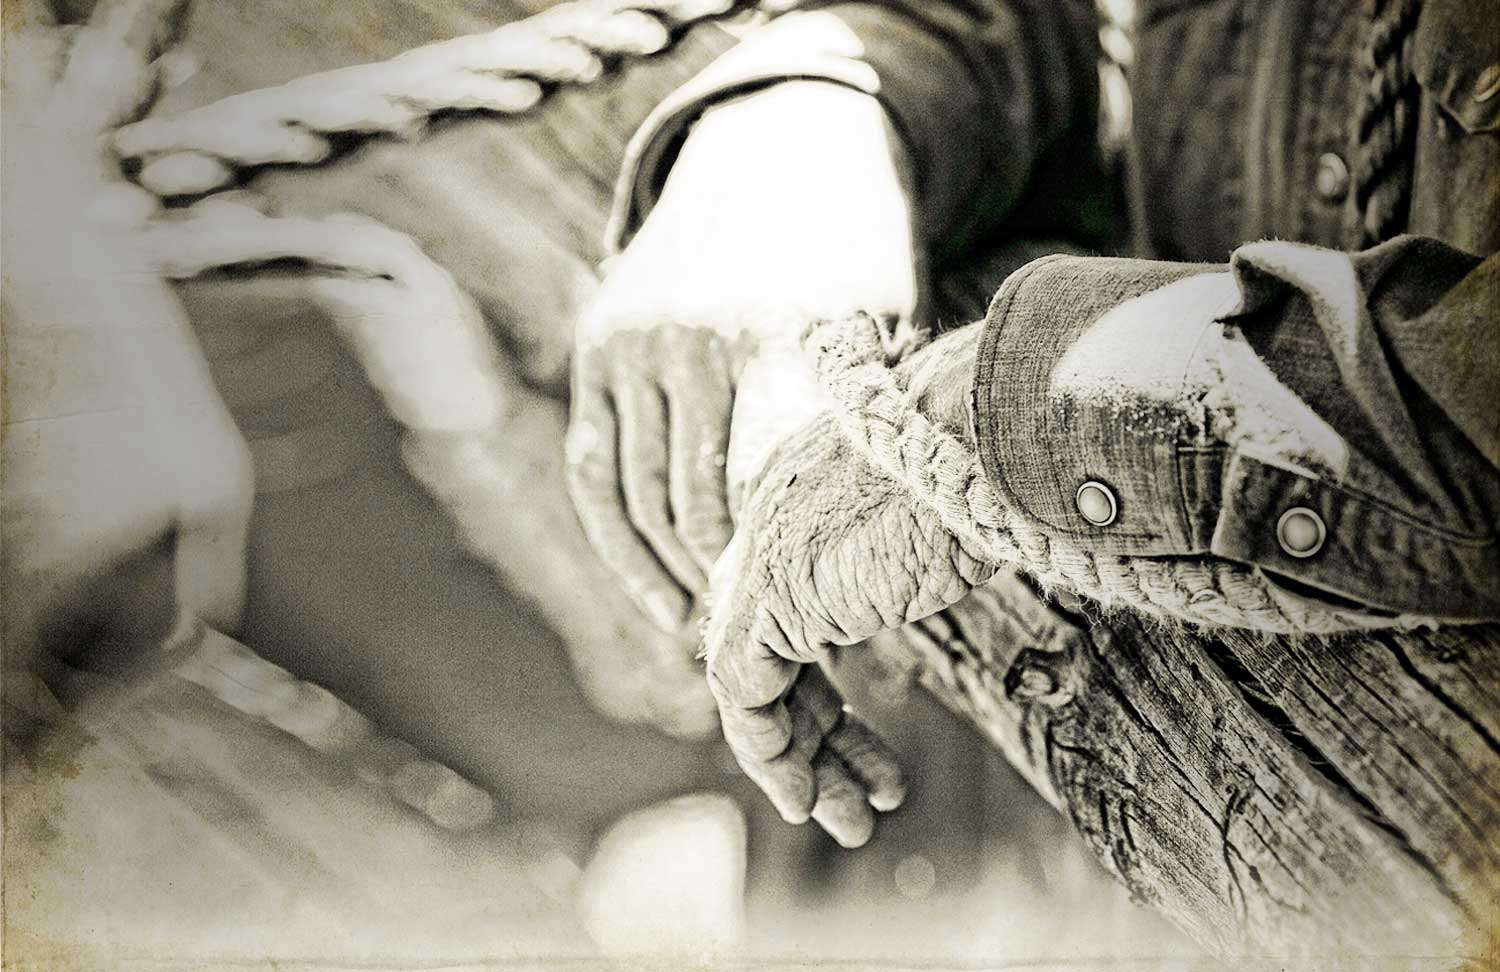 Background image of farmer's hands